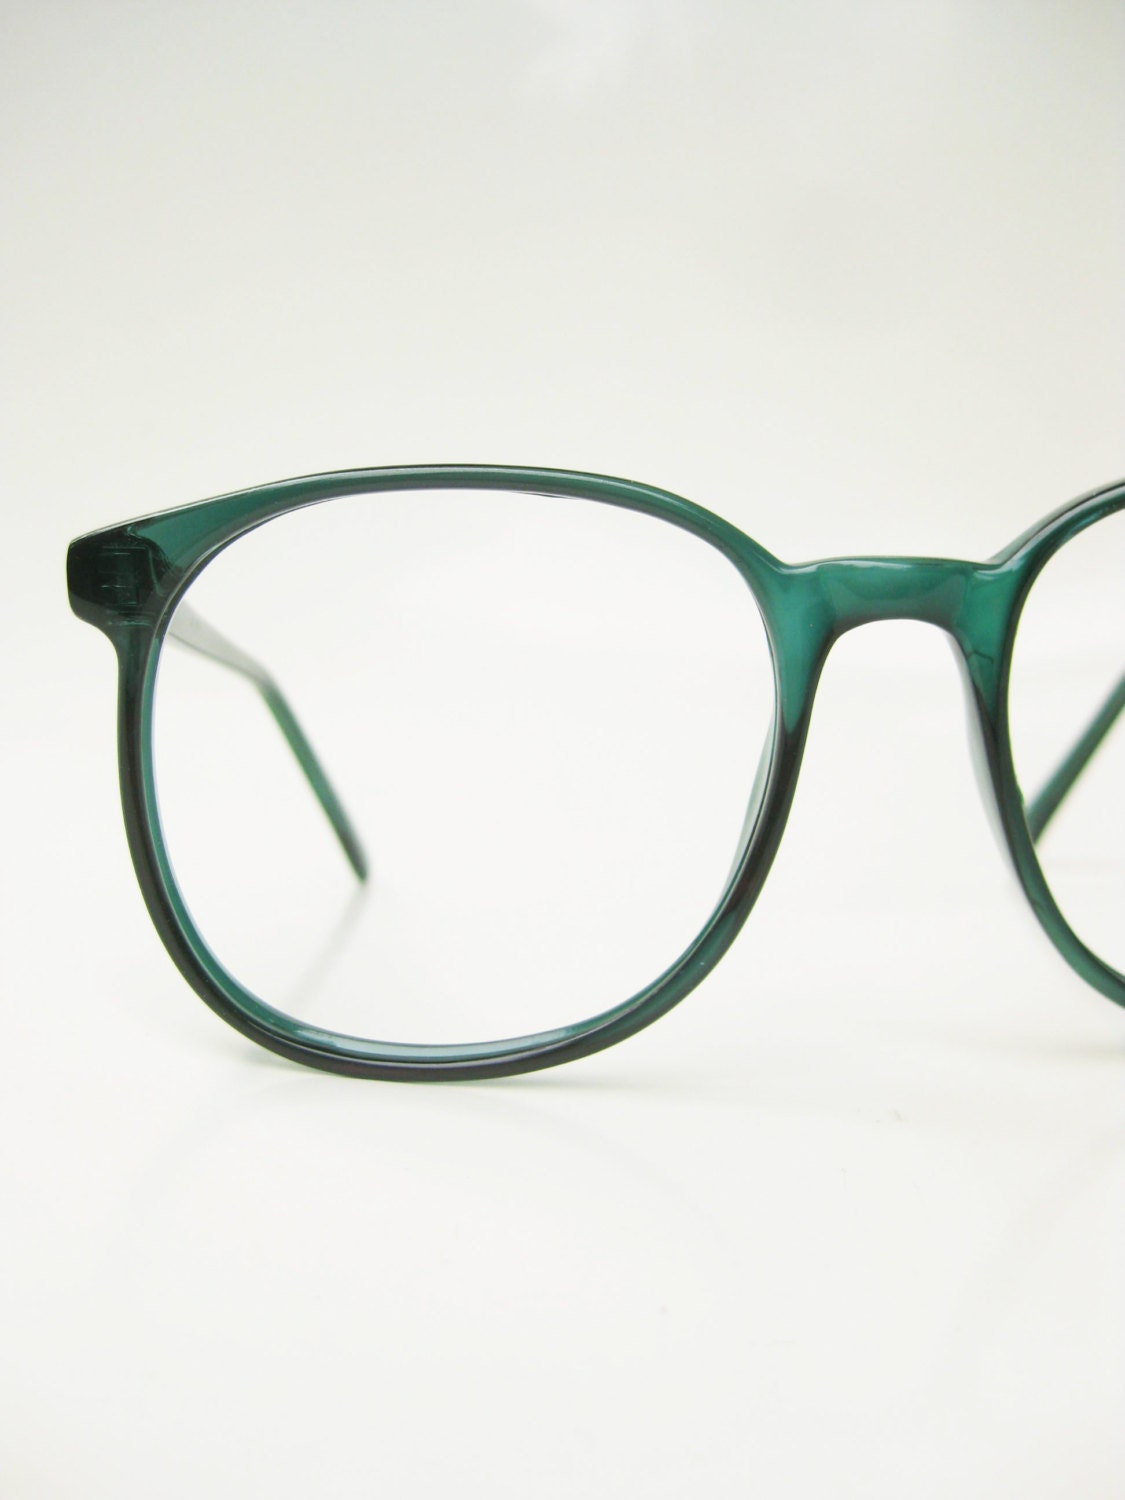 Vintage Green Eyeglasses 1970s Oversized Round by ...